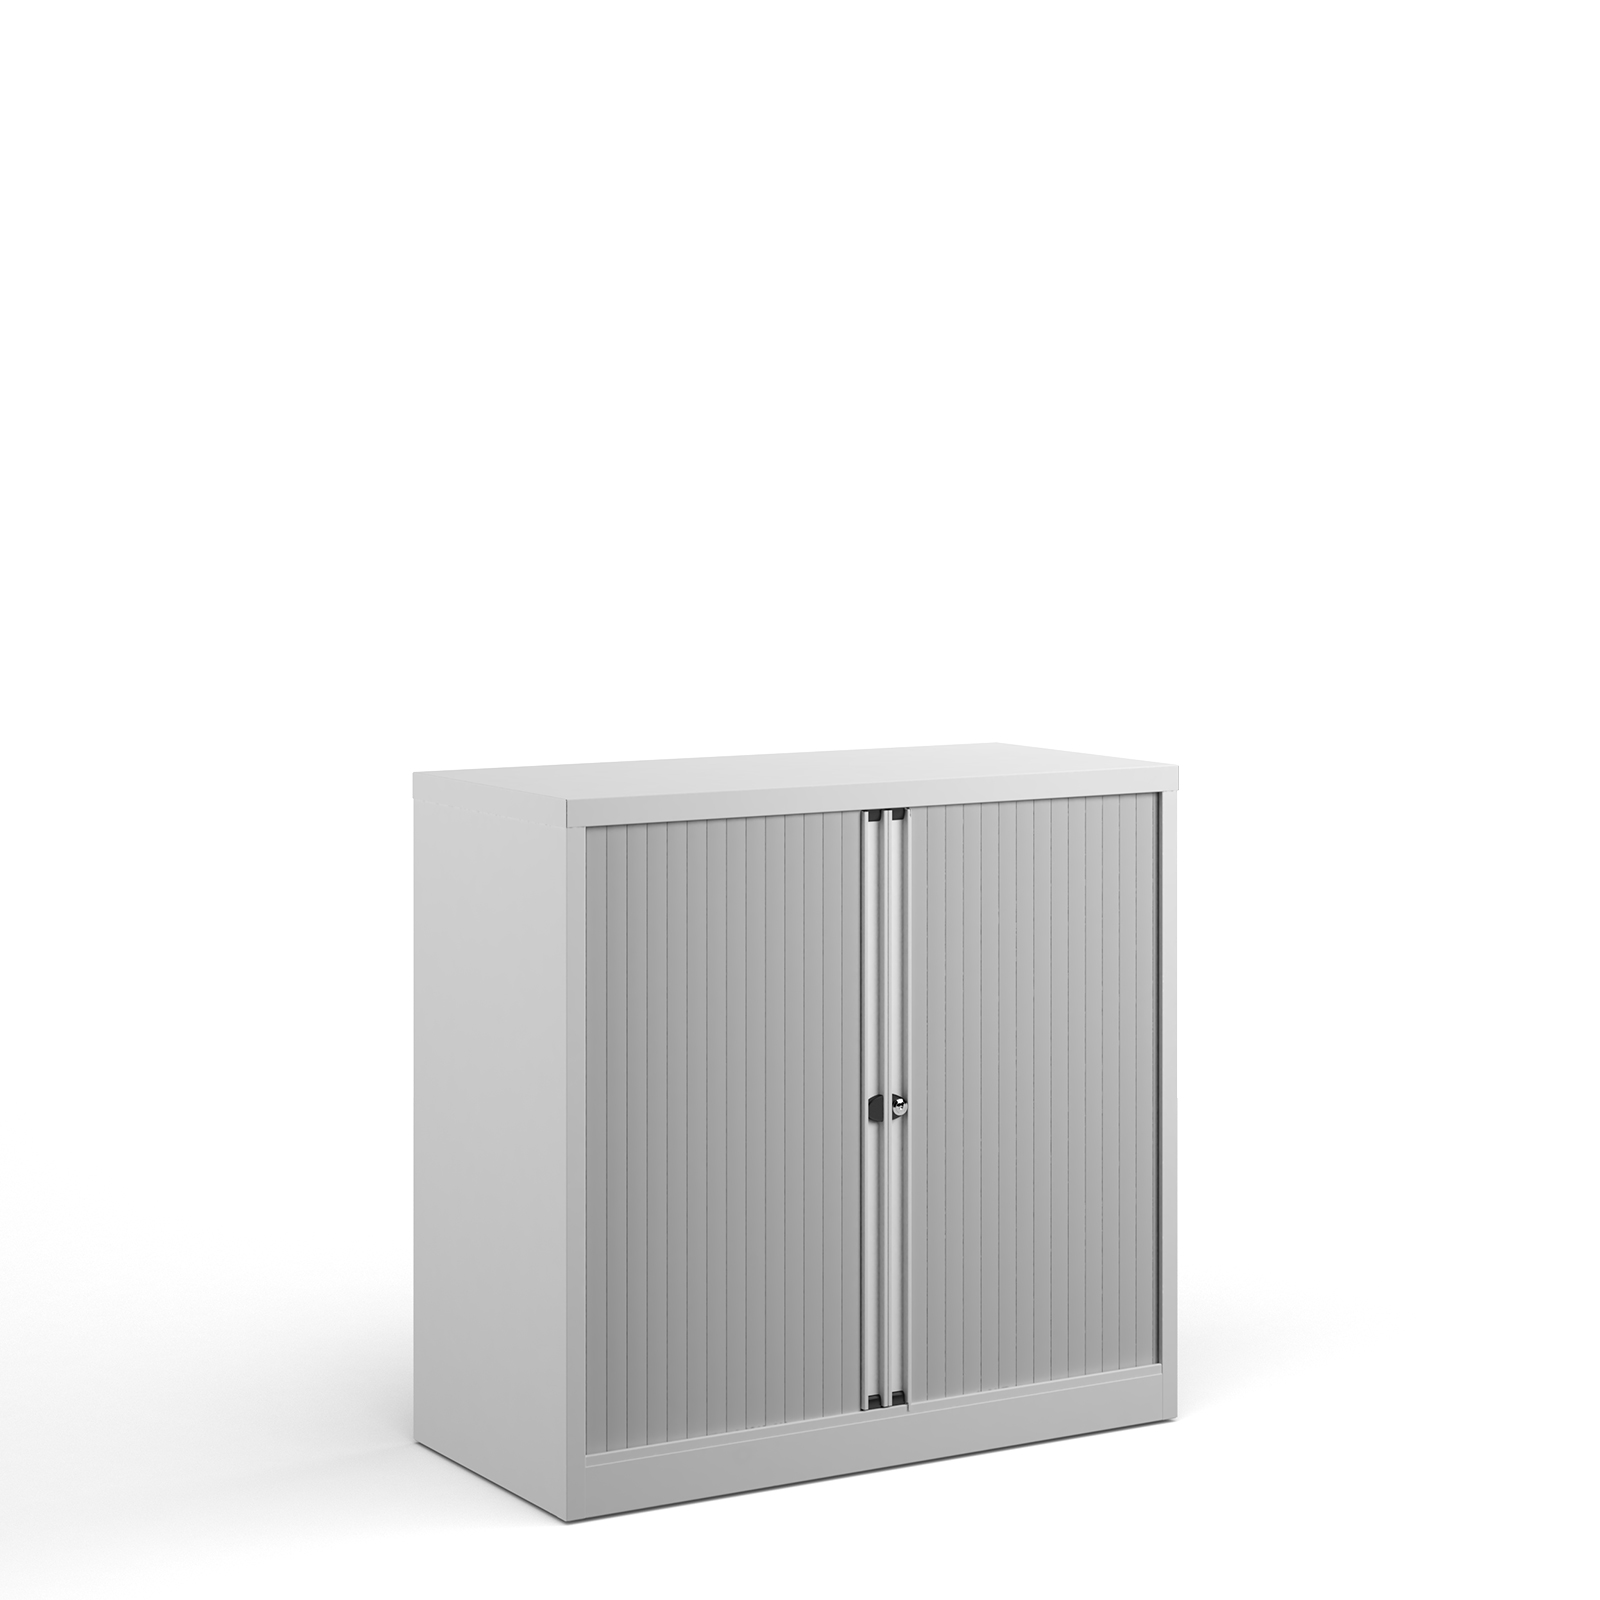 Up to 1200mm High Bisley systems storage low tambour cupboard 1000mm high - white